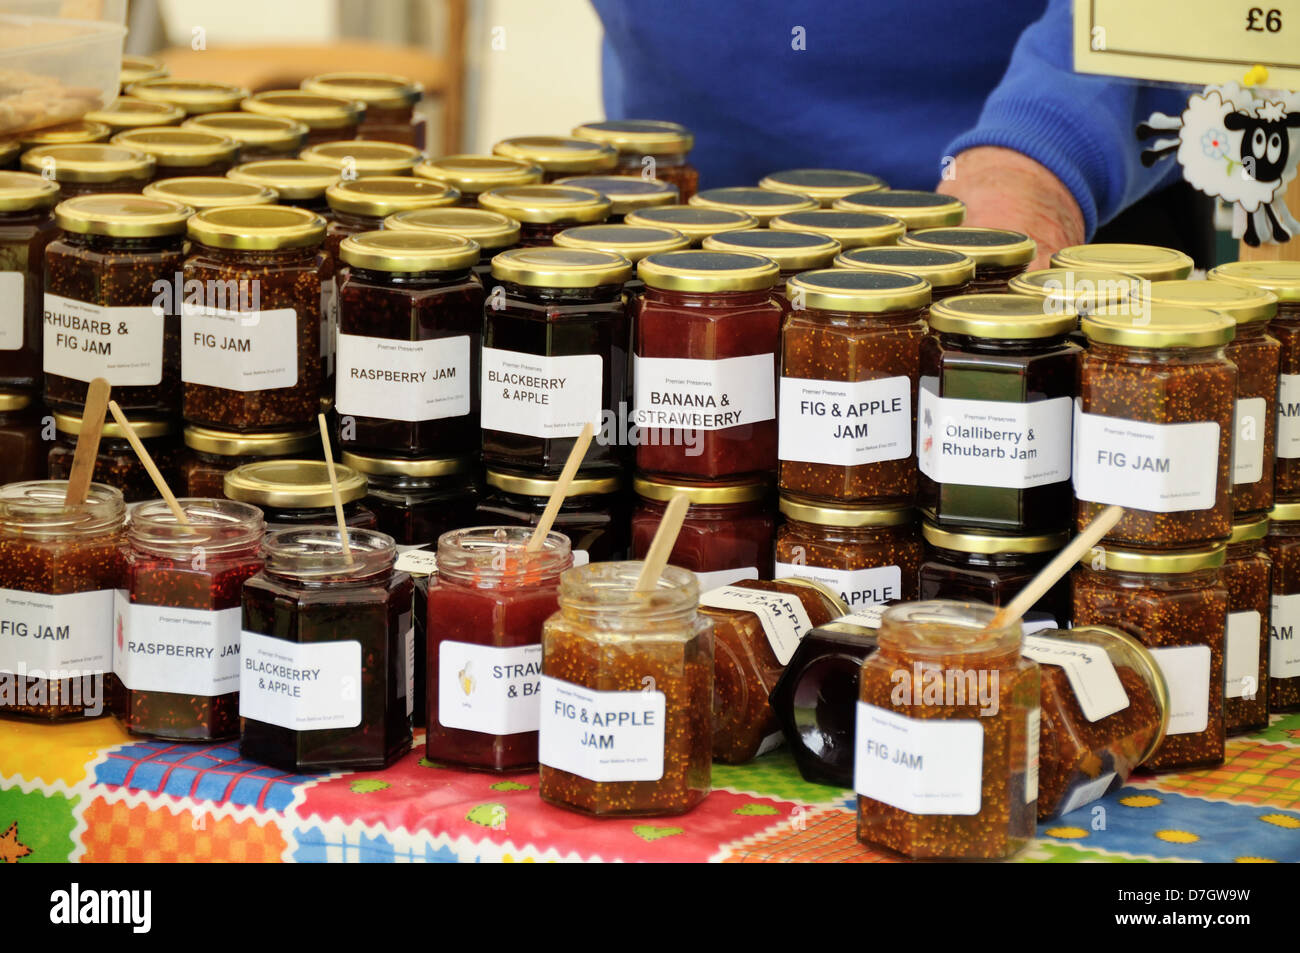 a display on a market stall showing many different kinds of jam on